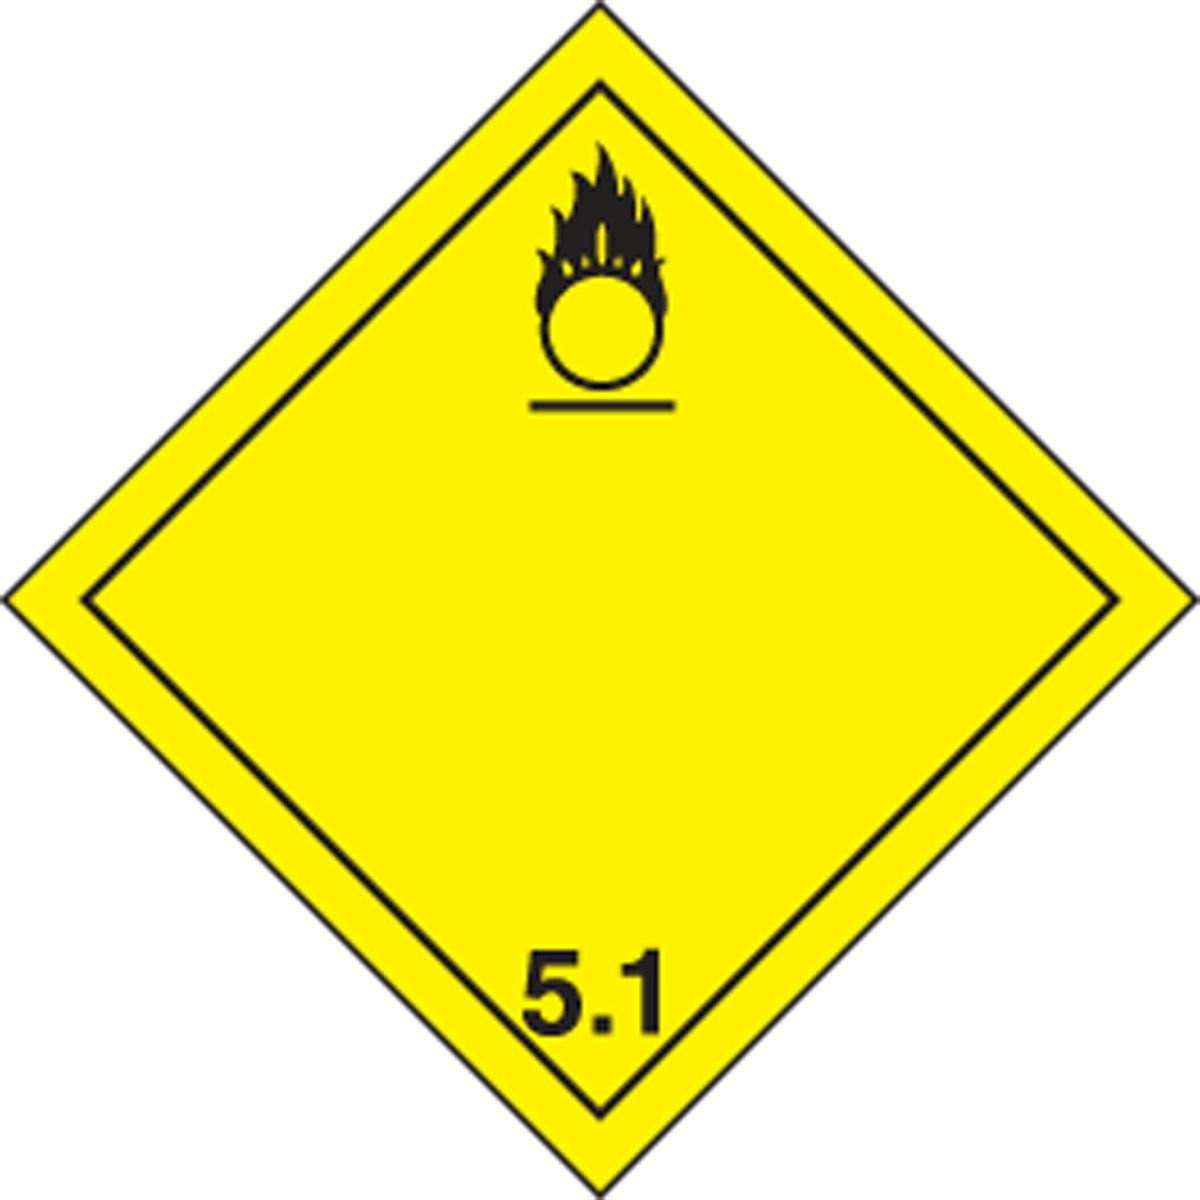 TDG PLACARD - TRANSPORTATION OF DANGEROUS GOODS